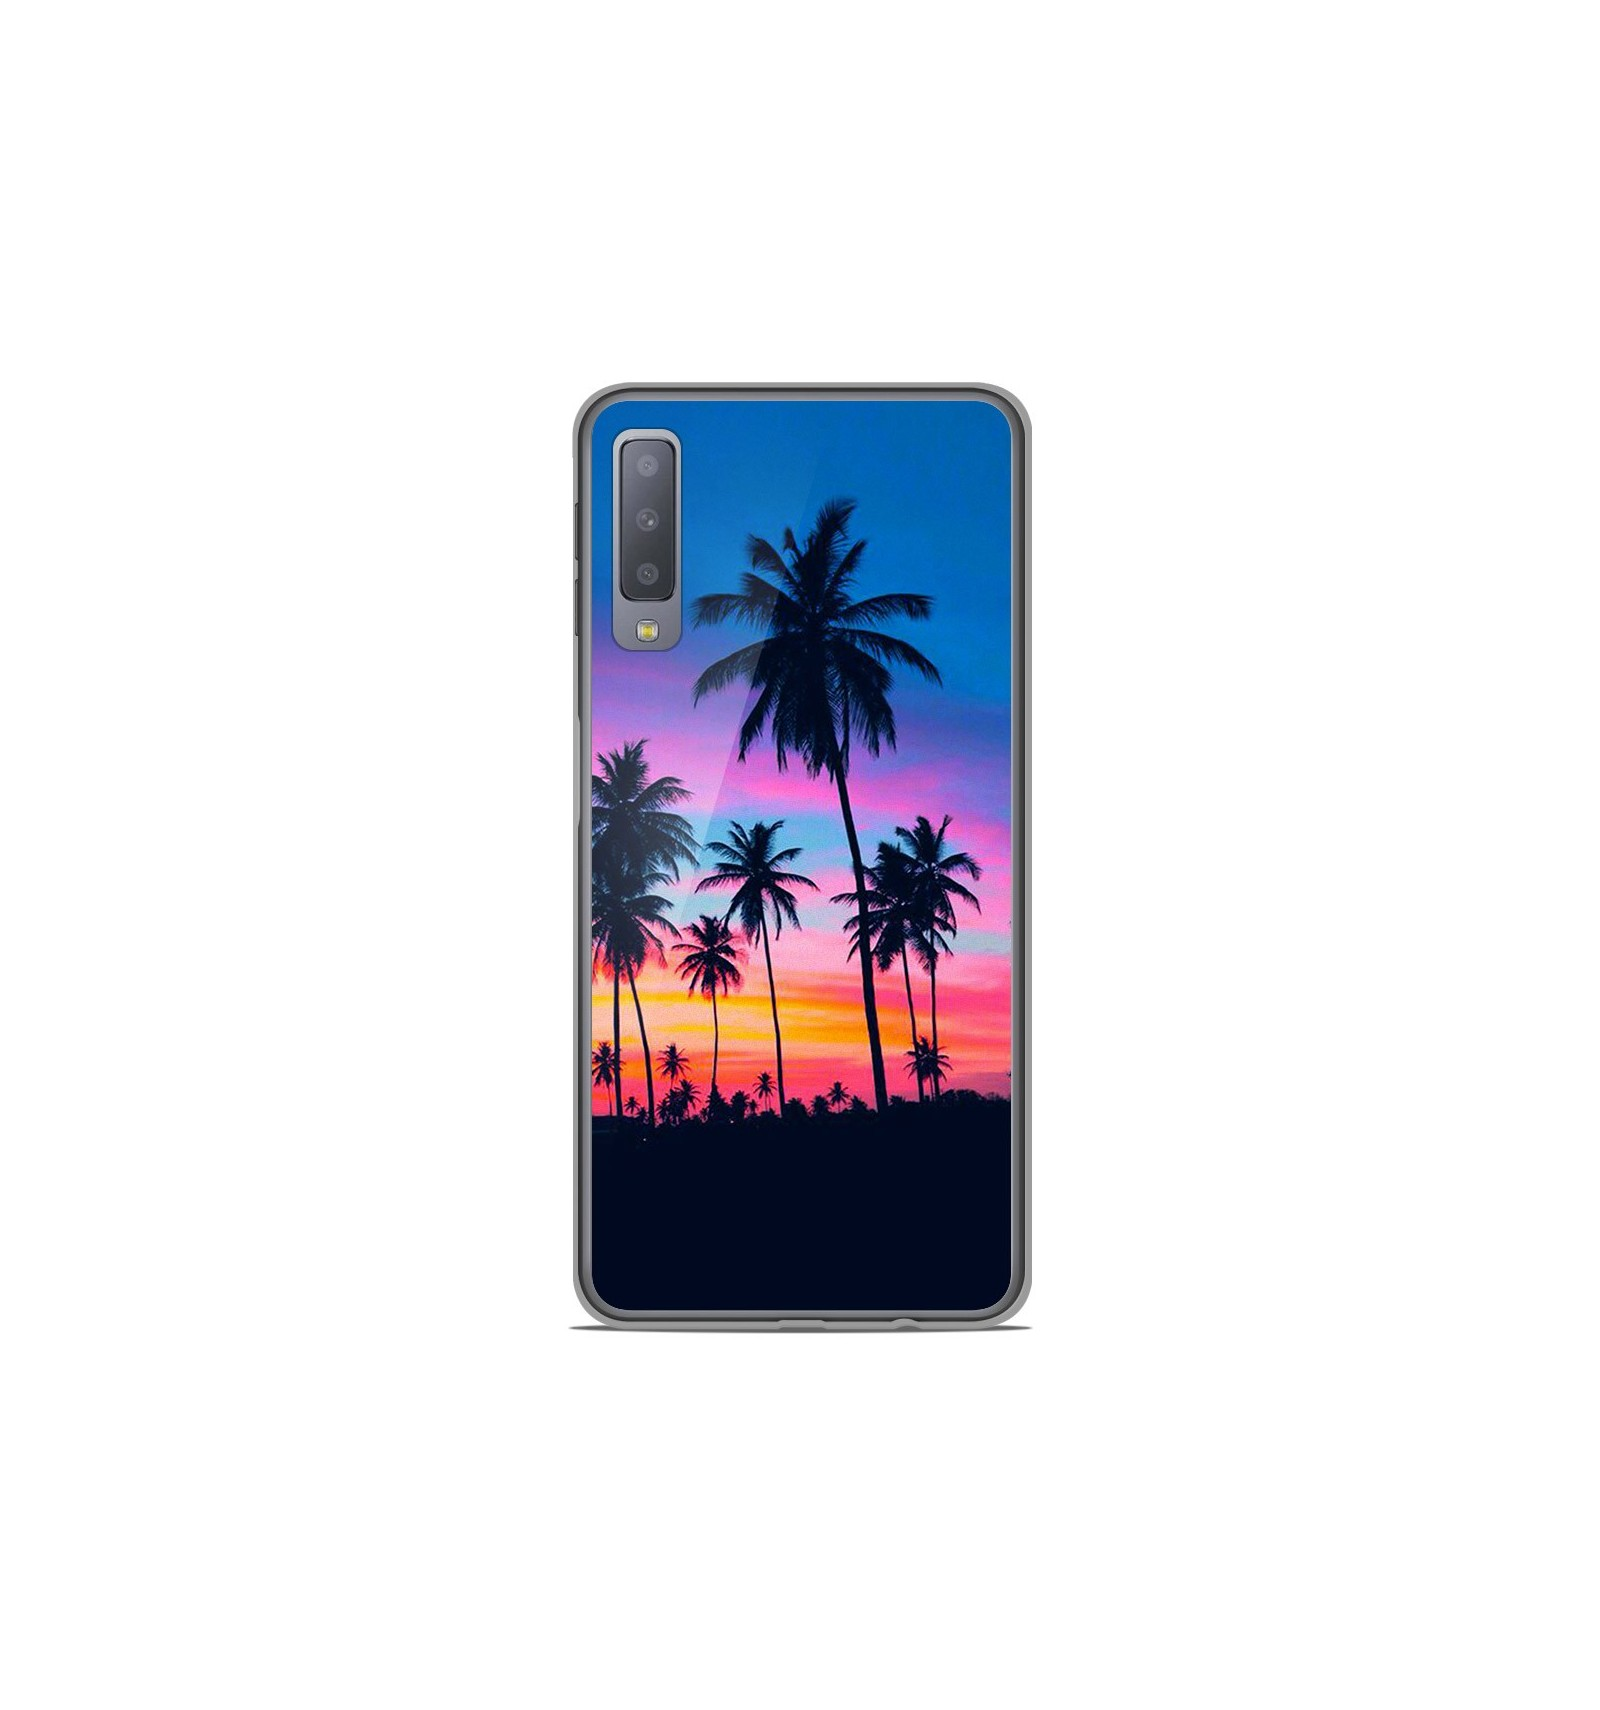 coque gel samsung galaxy a7 2018 lune